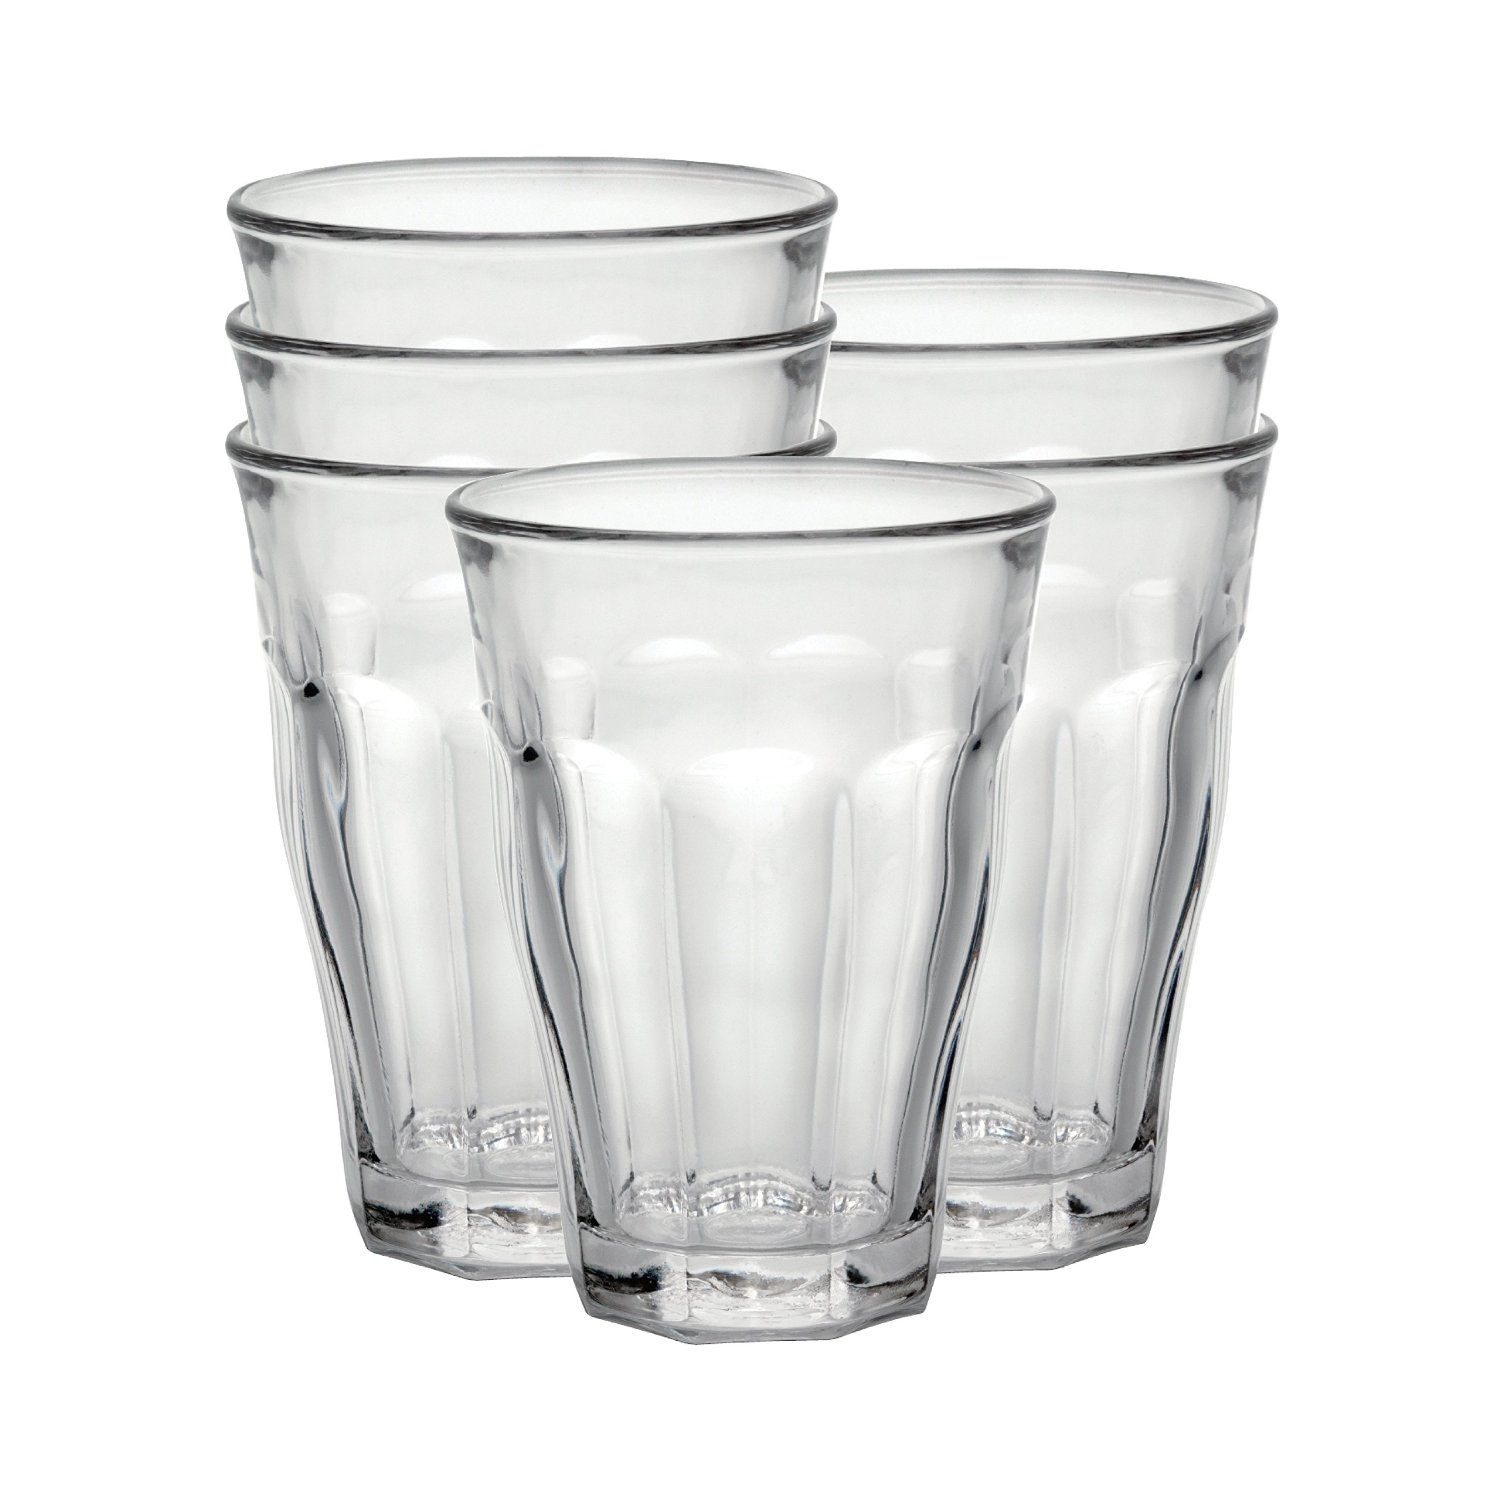 Duralex Picardie 16-7/8-Ounce Clear Tumbler, Set of 6